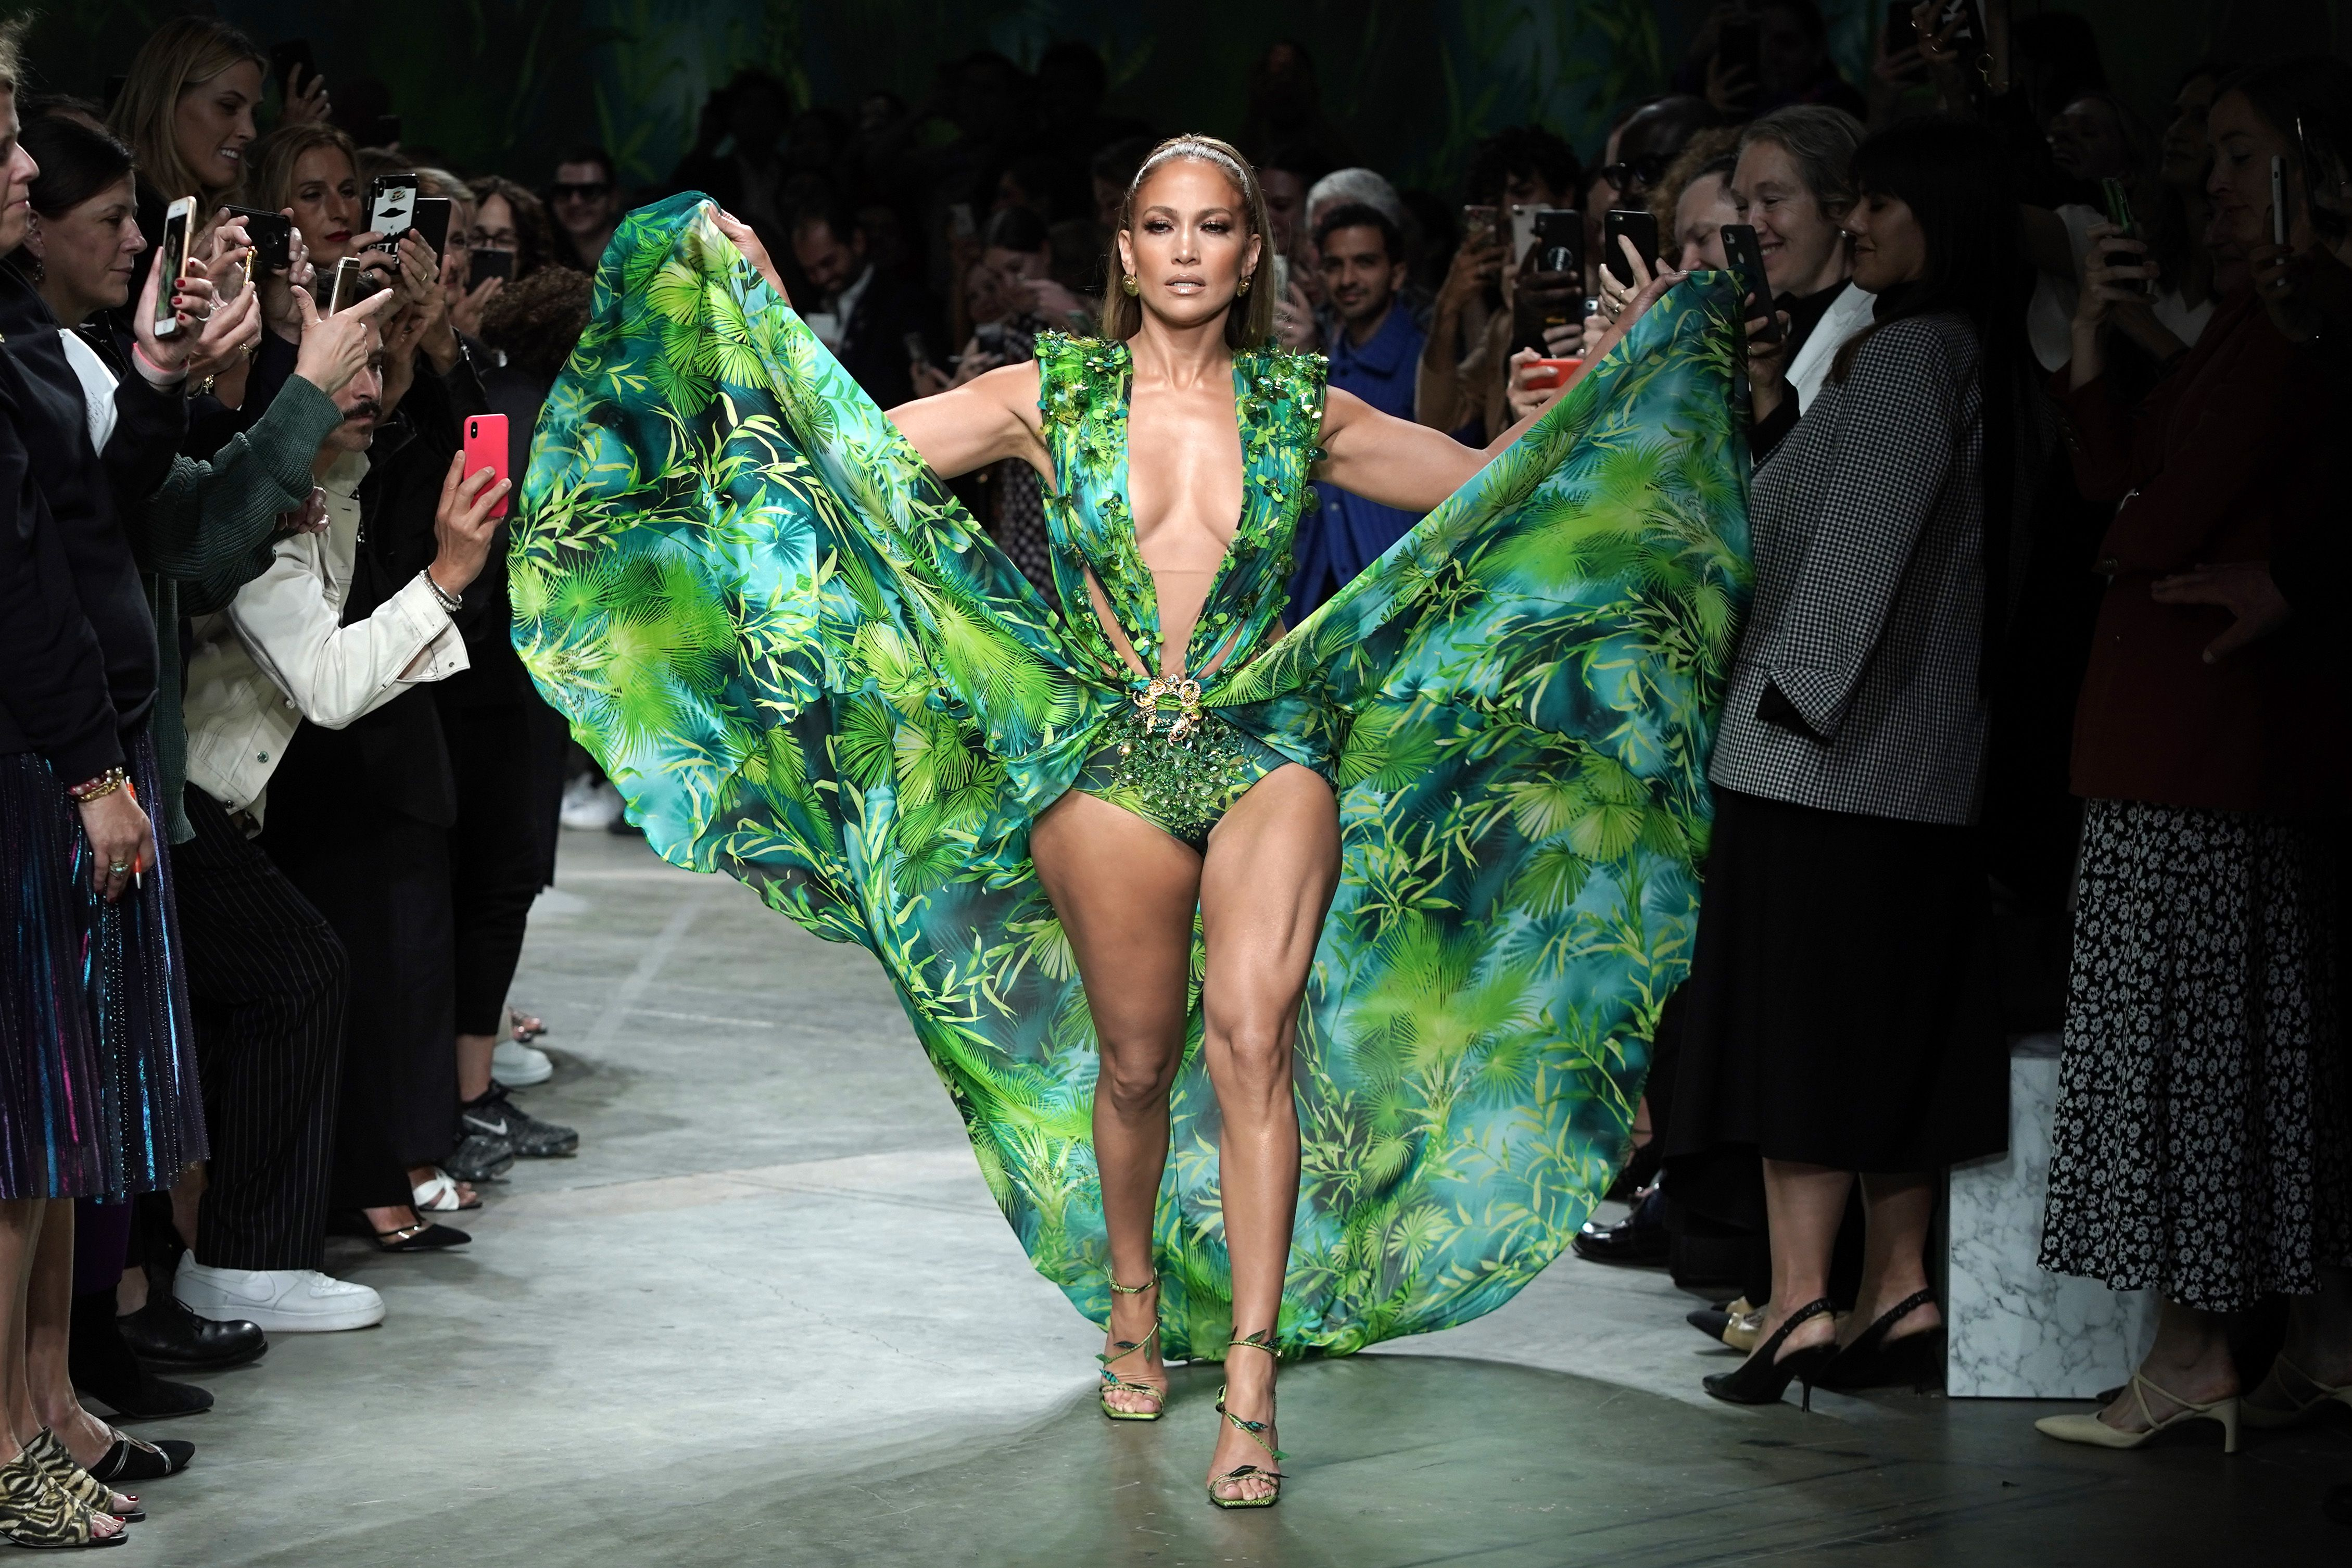 Jennifer Lopez looks incredible in this flowery green dress as she walks in the midst of people while flashing her thighs.